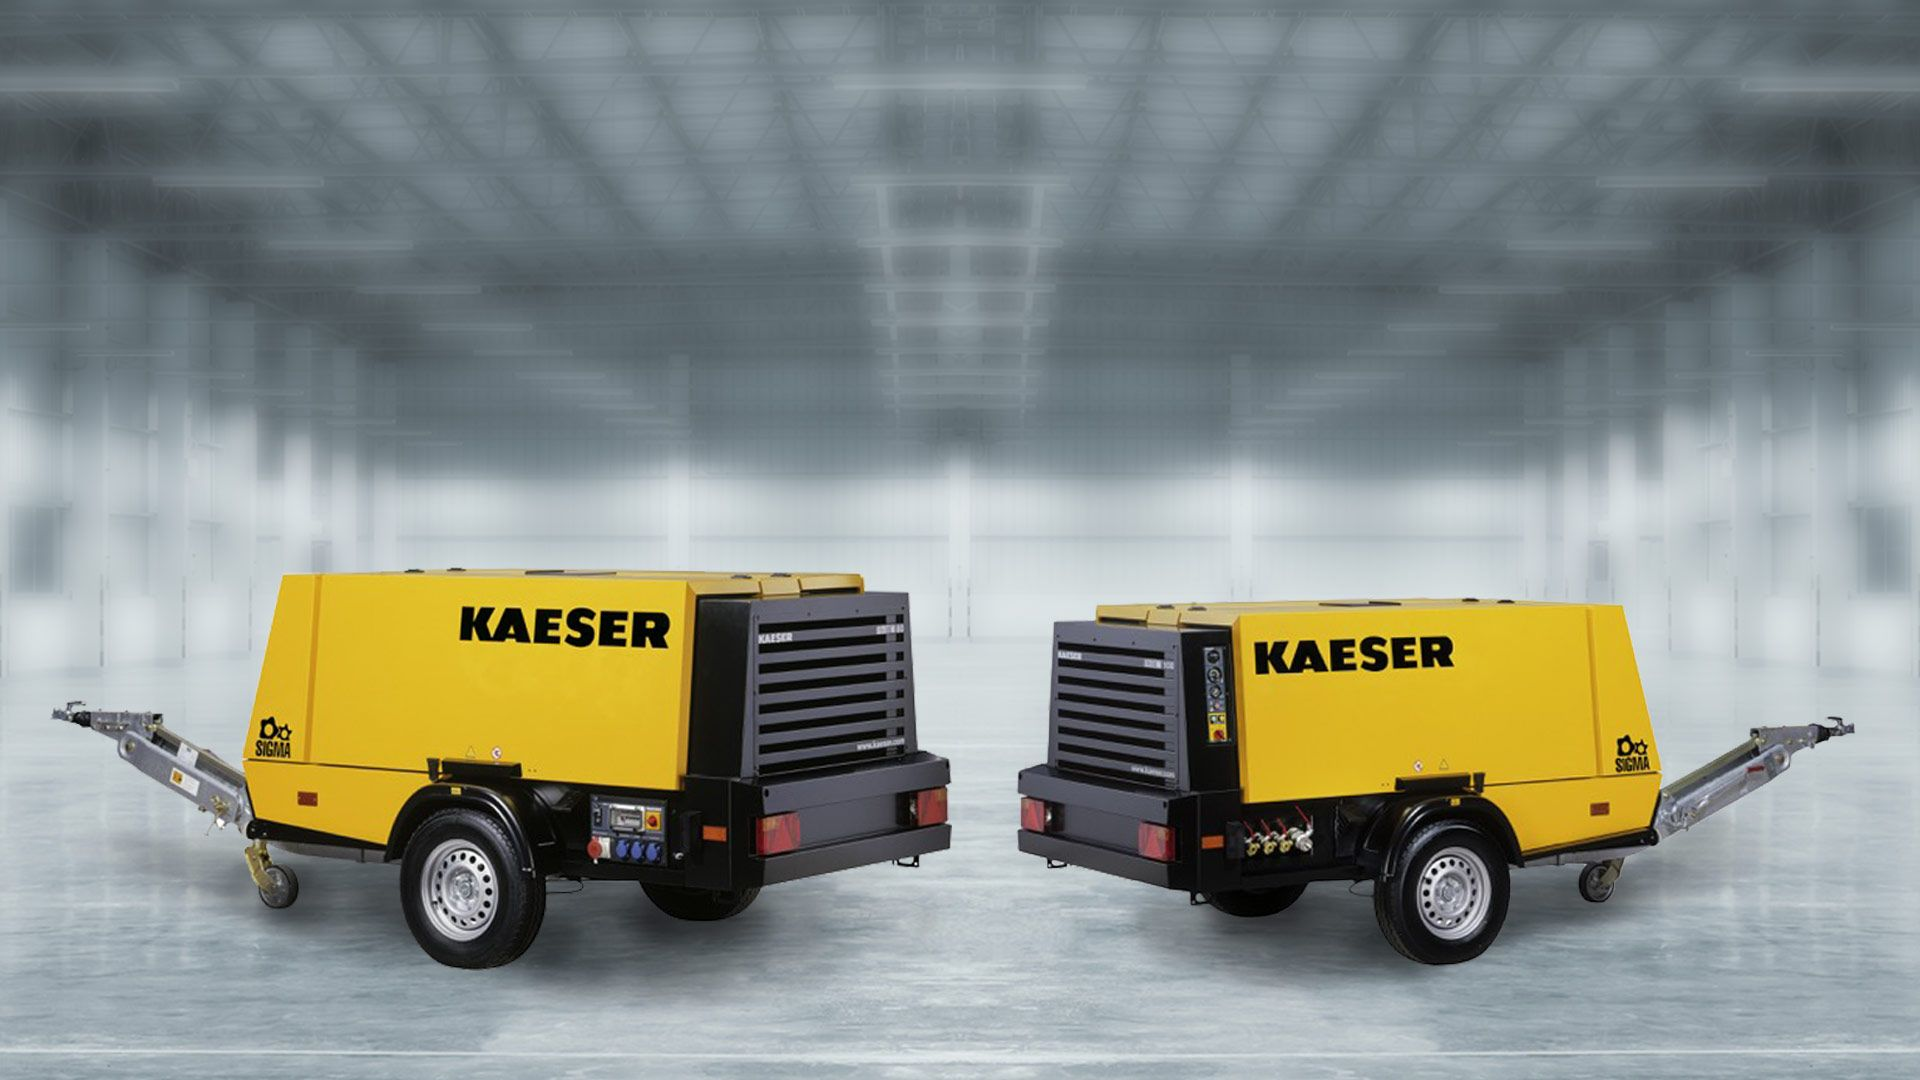 Two air compressors from KAESER